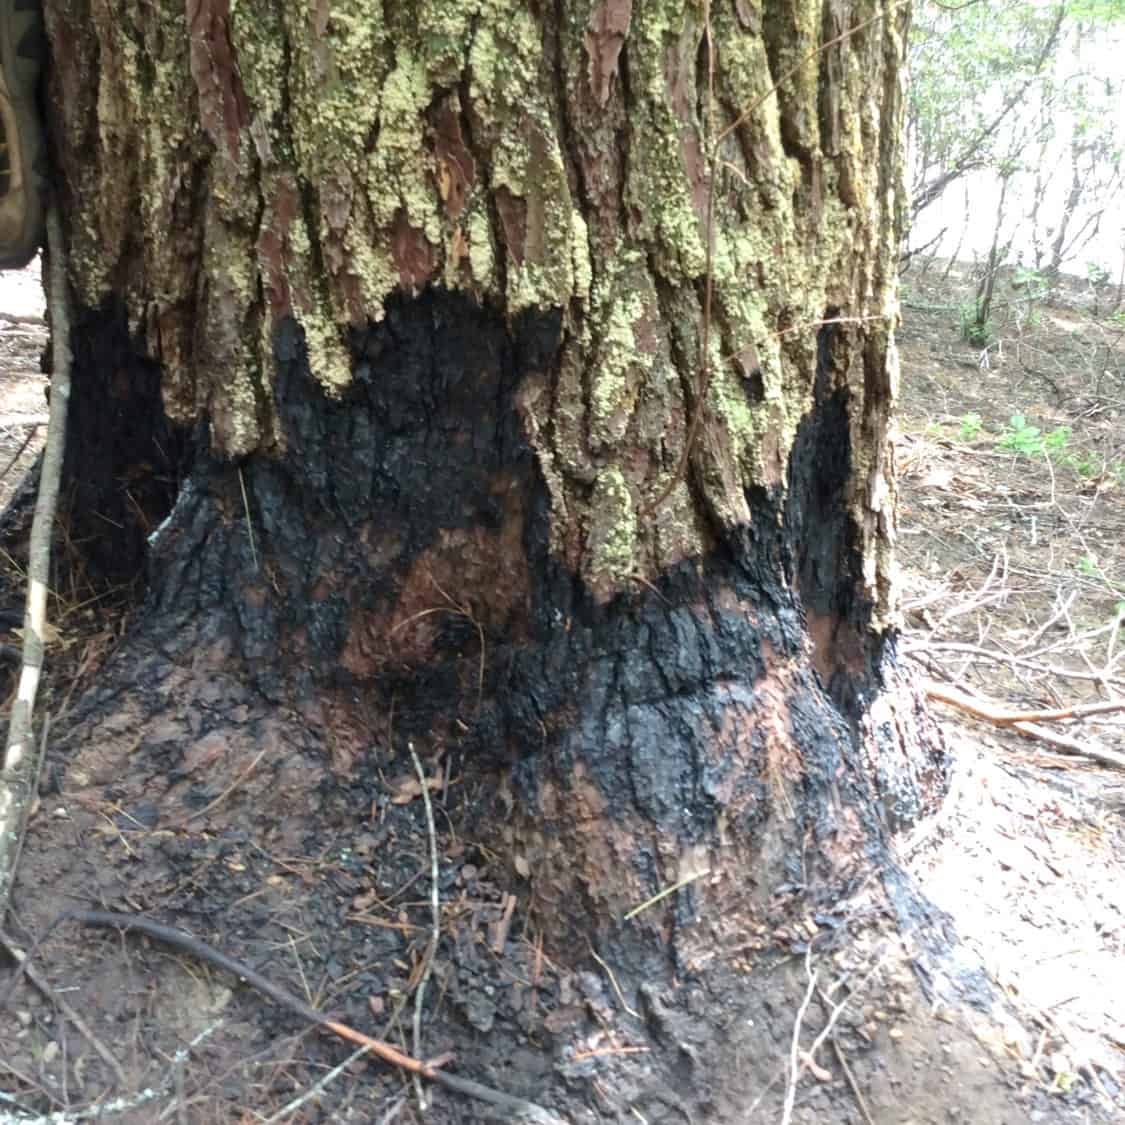 A burn scar on the trunk of a tree